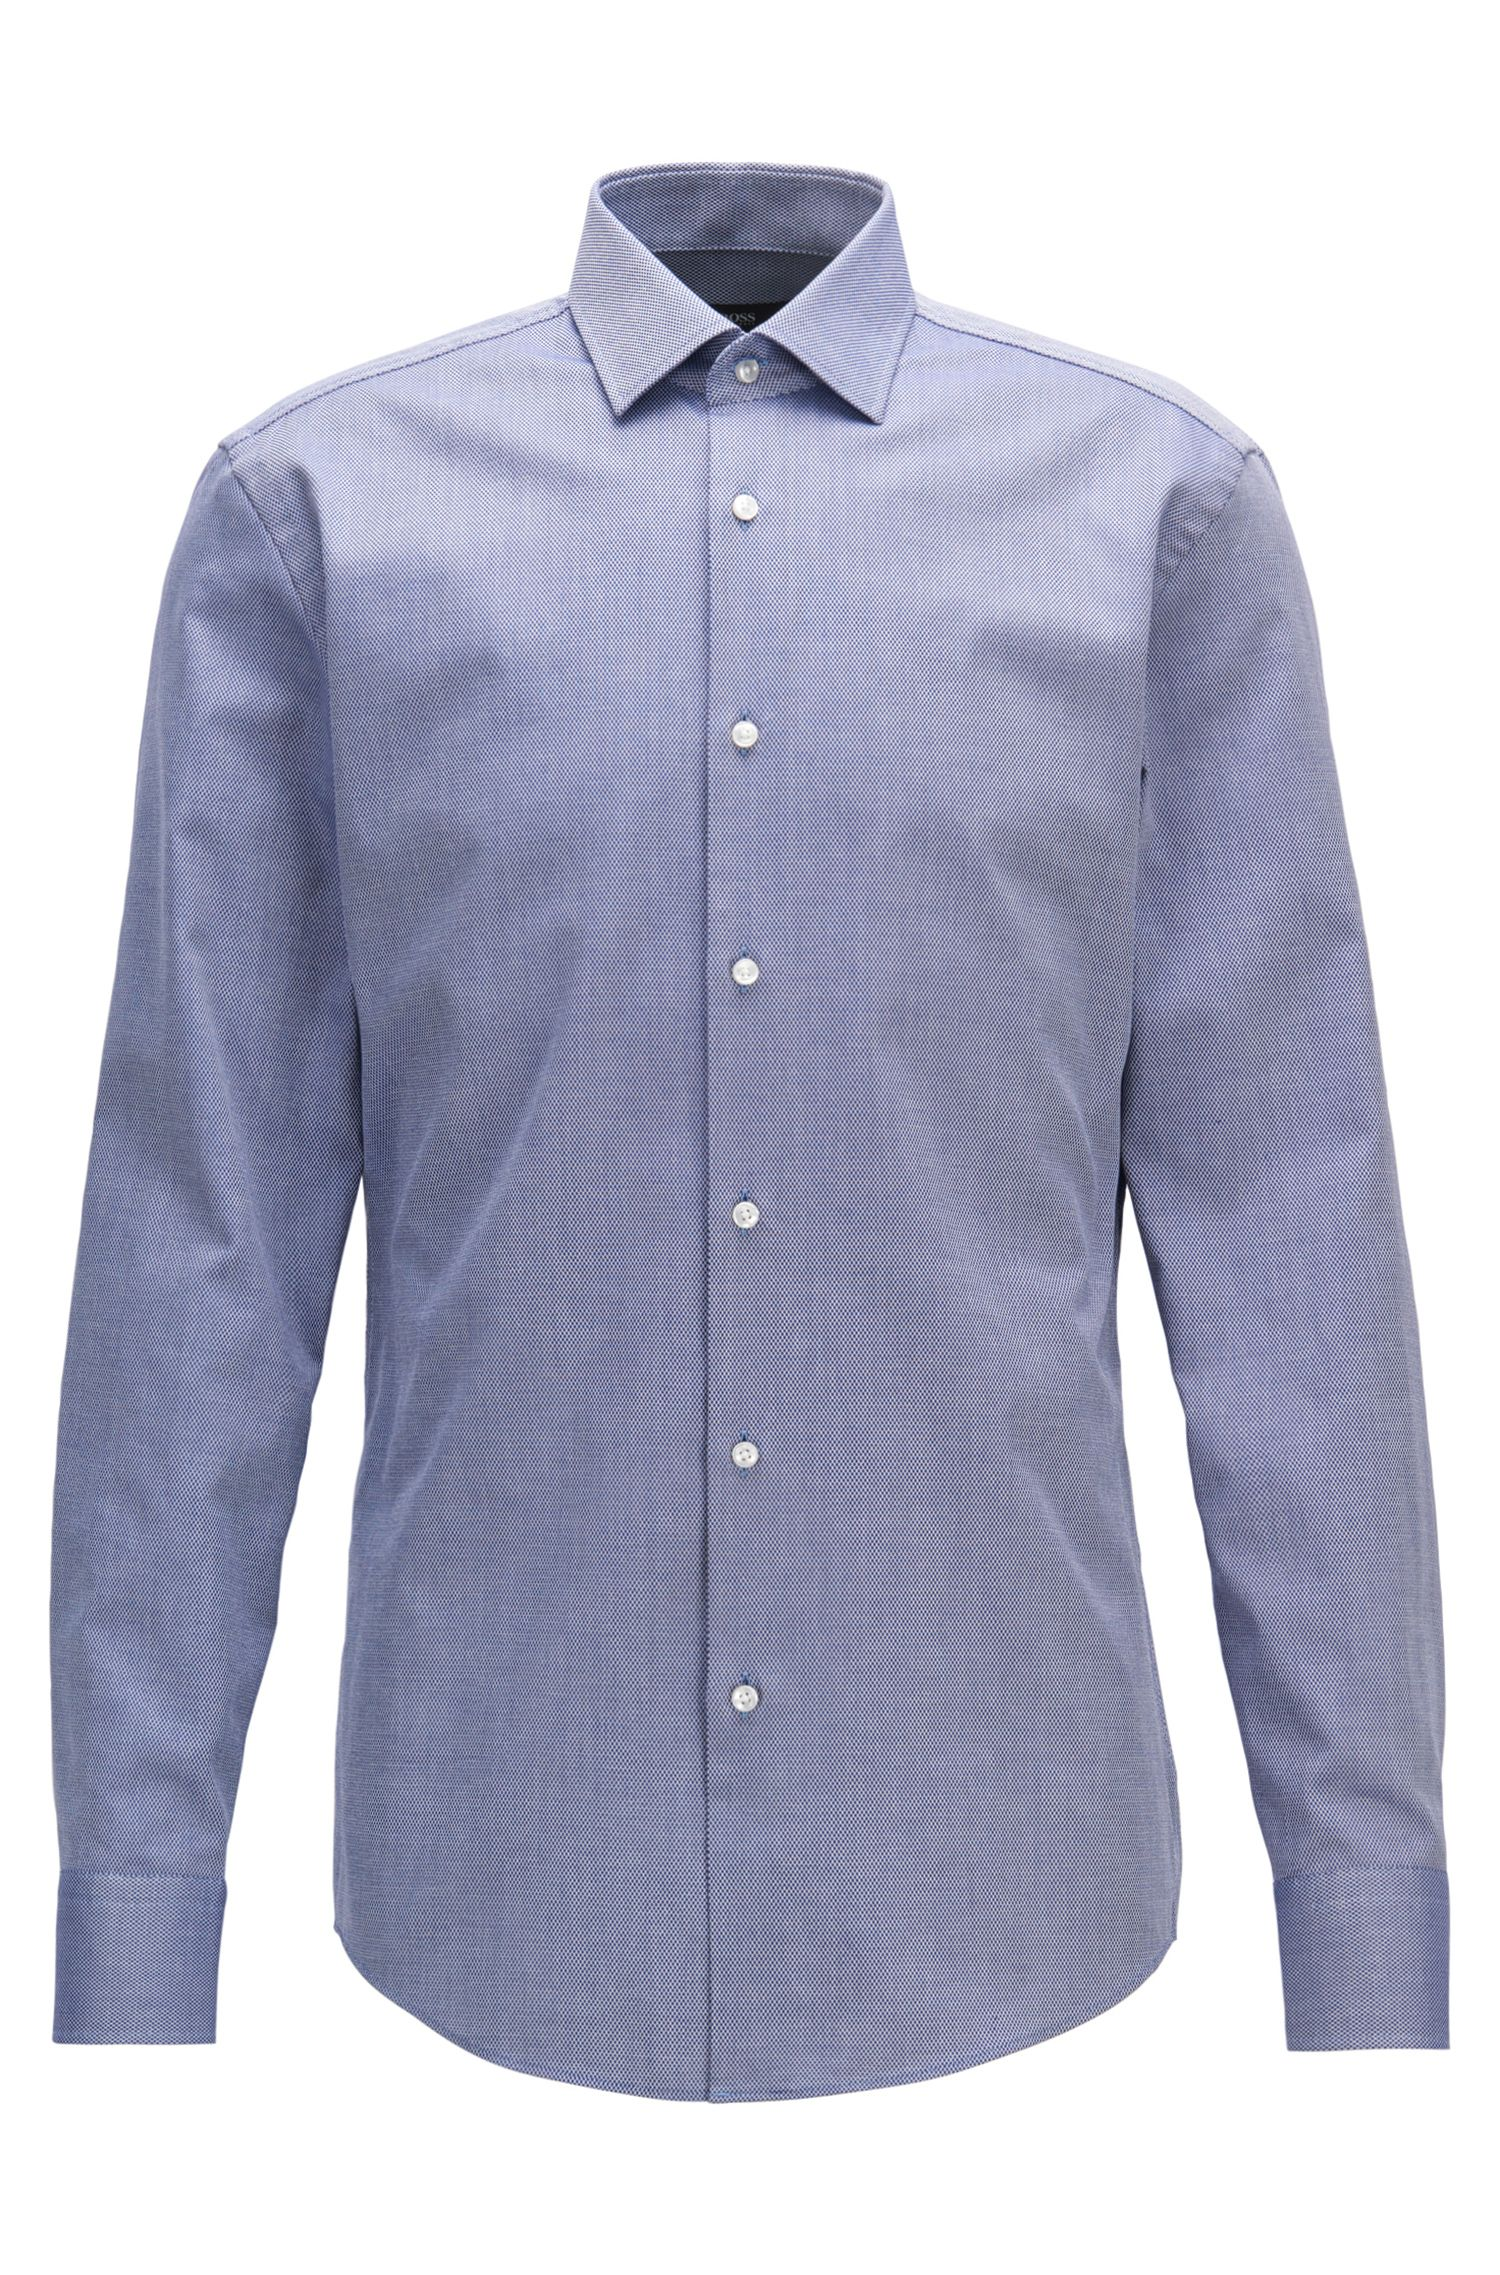 Birdseye Cotton Dress Shirt, Slim Fit | Jenno